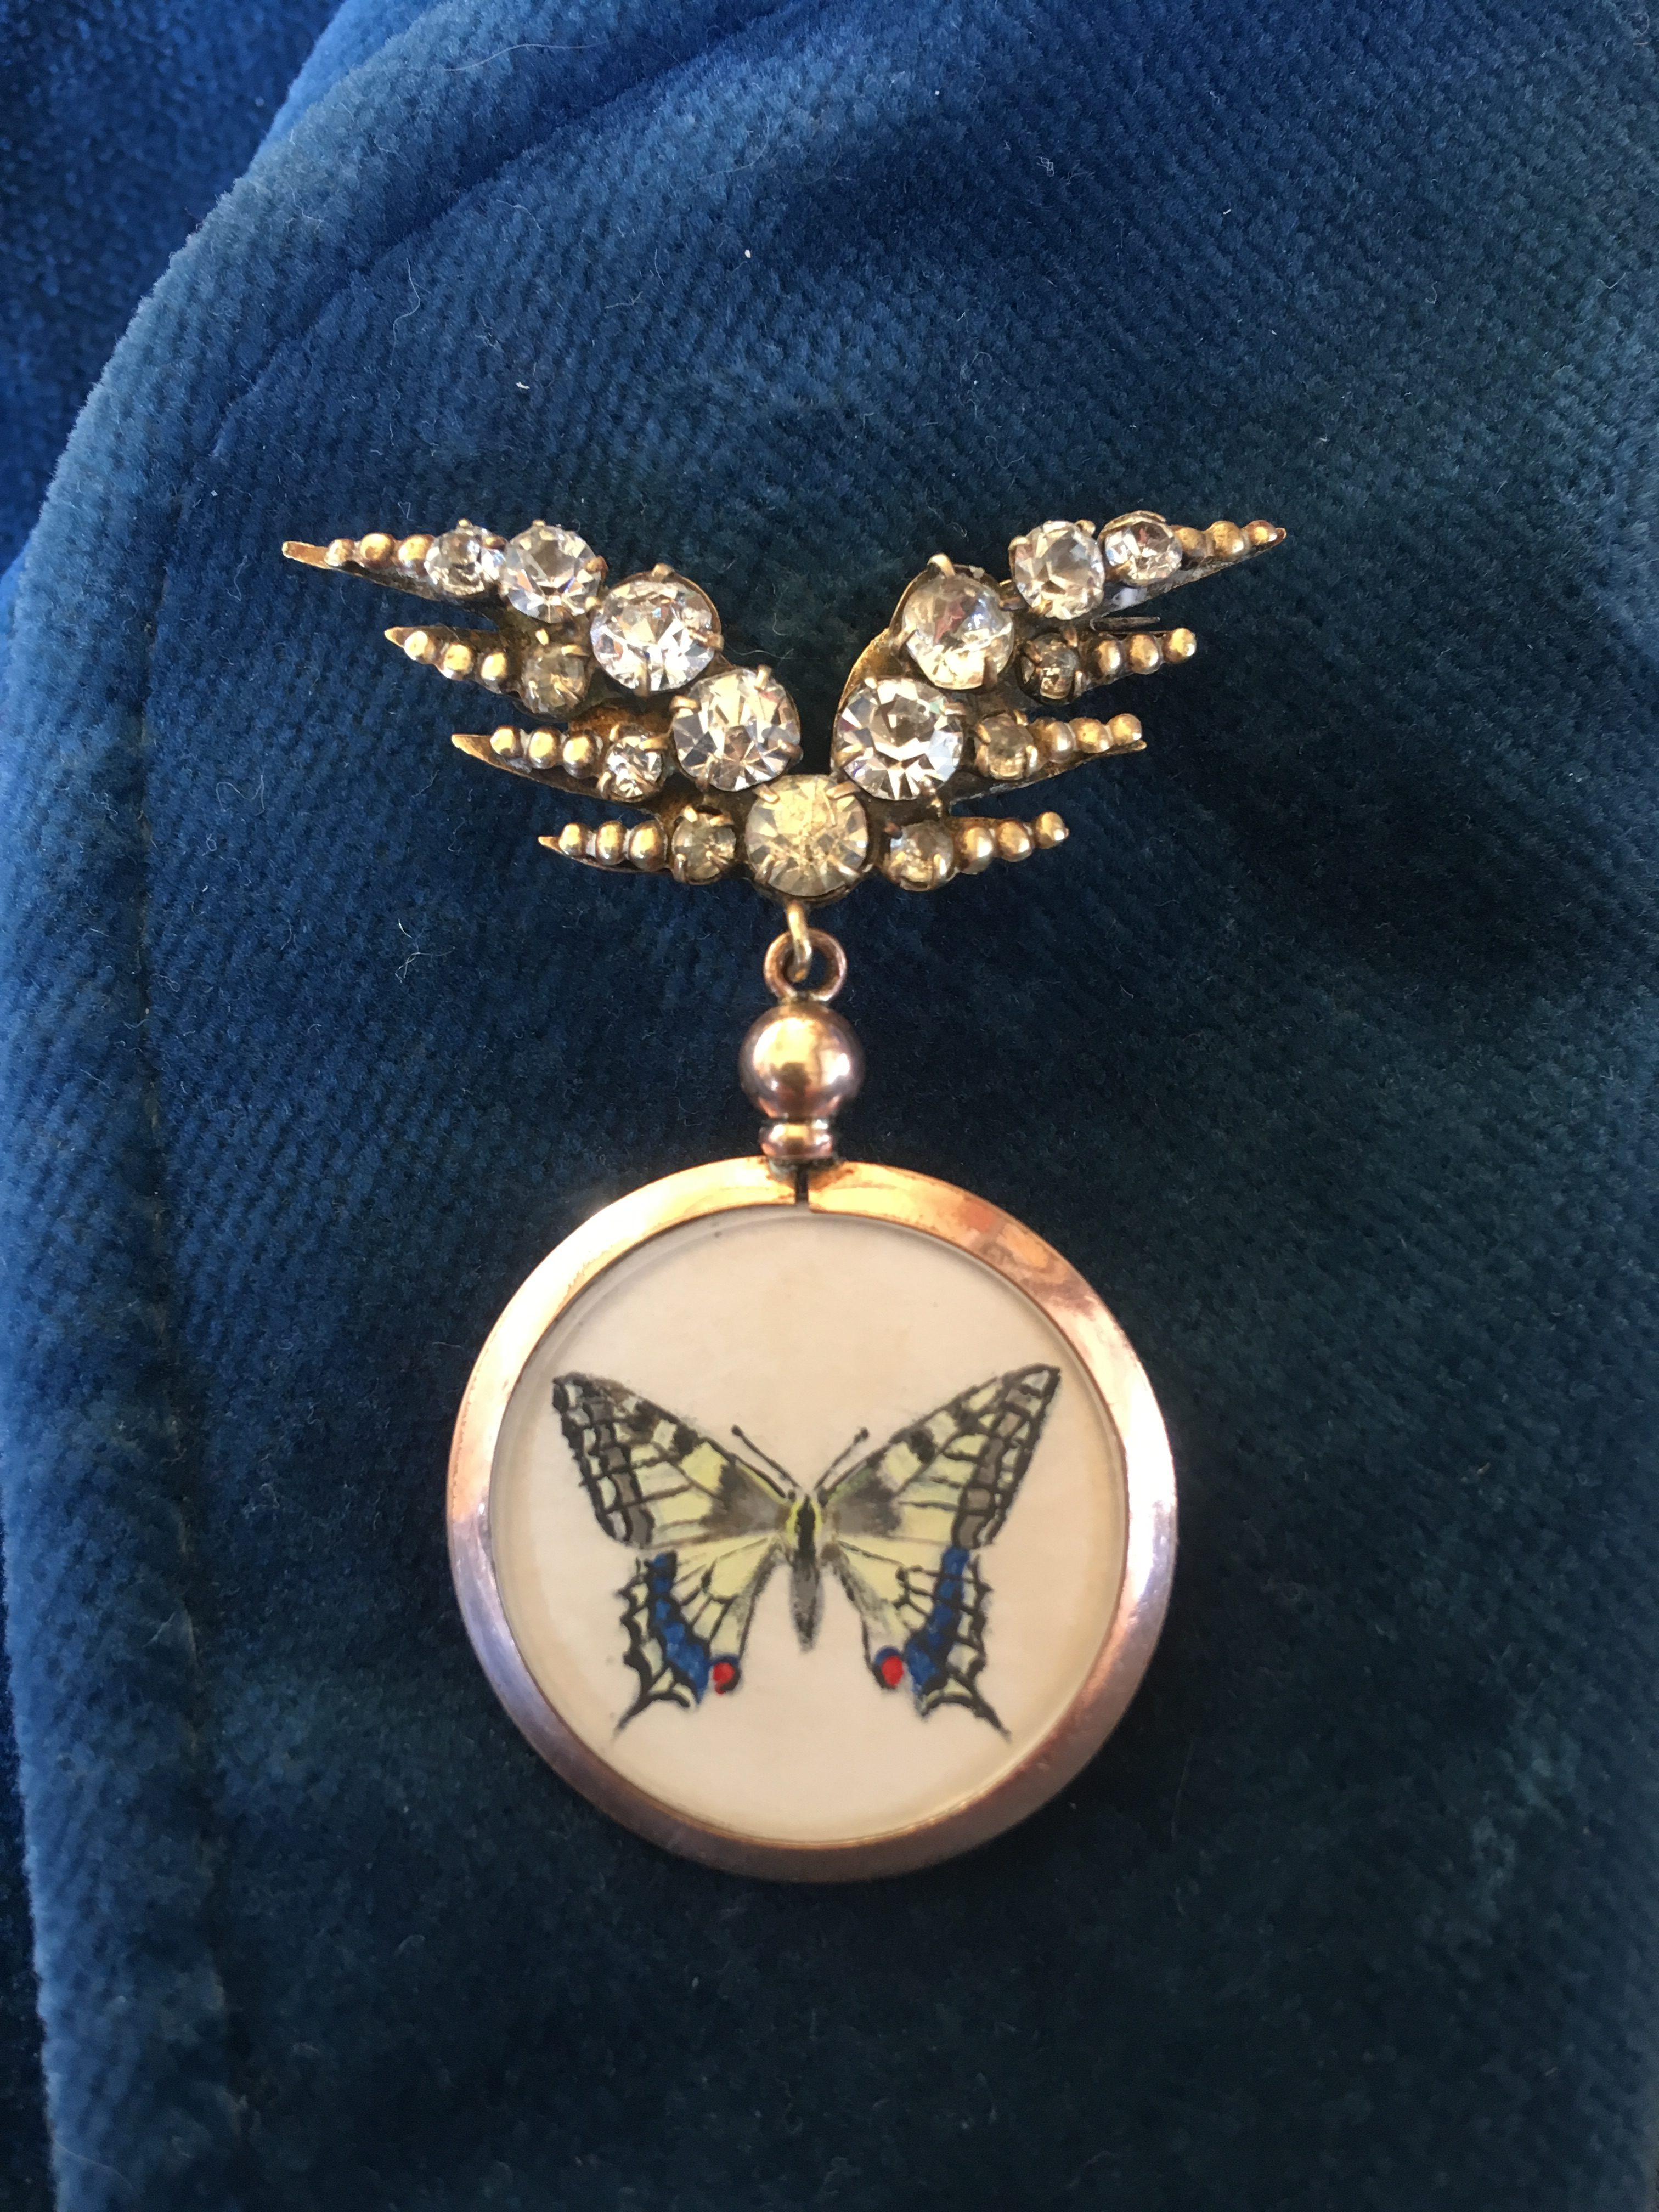 Butterfly brooch, hand-painted Swallowtail butterfly by Charlotte at Treespeake